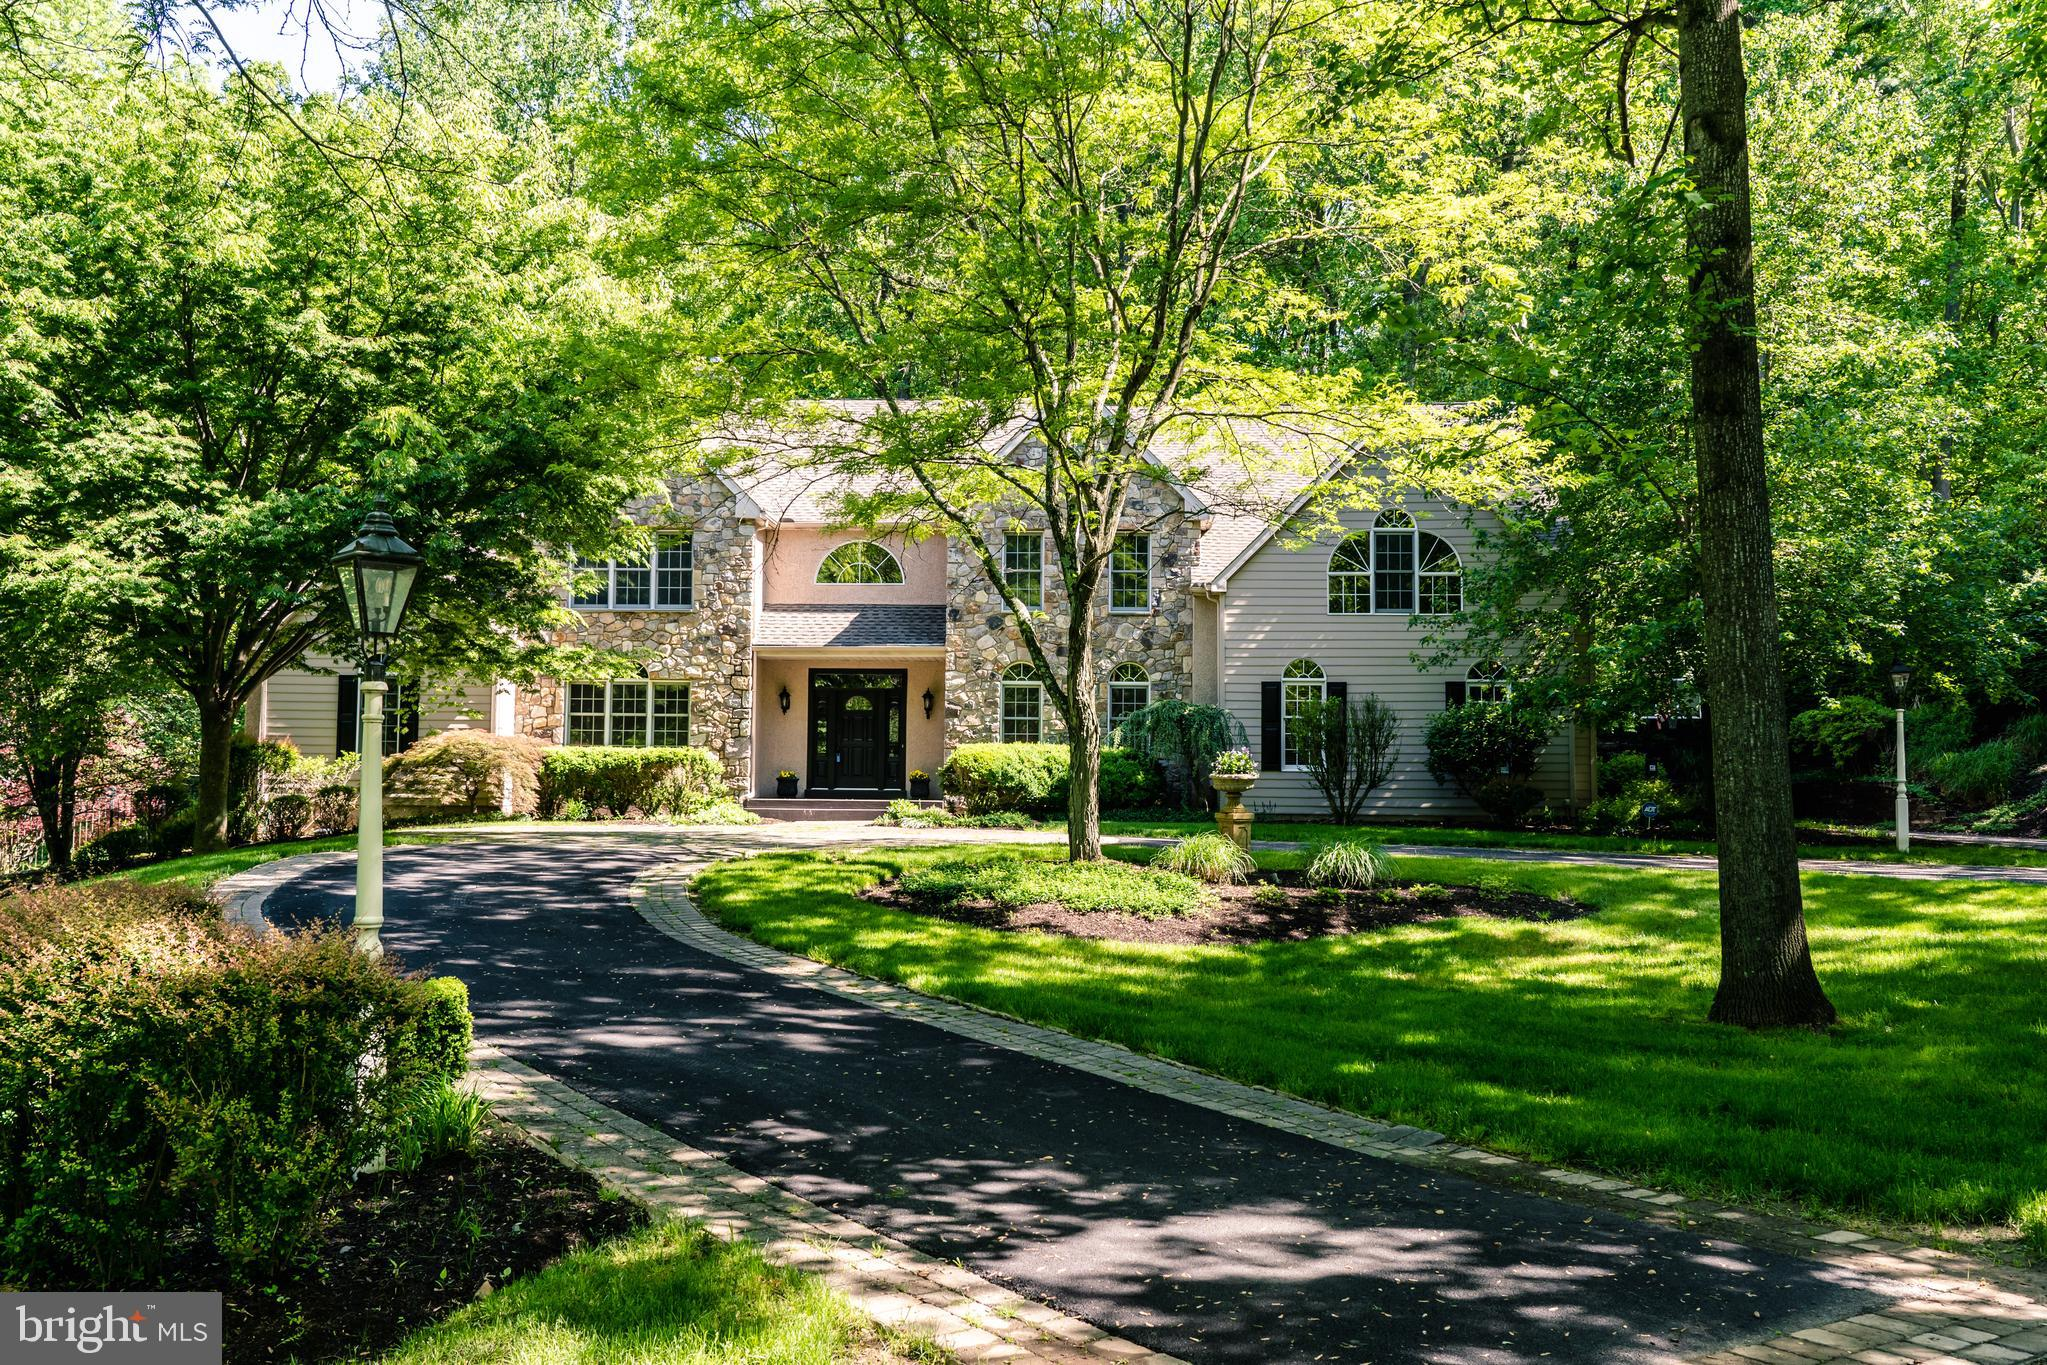 17 HONEYSUCKLE COURT, GLEN MILLS, PA 19342